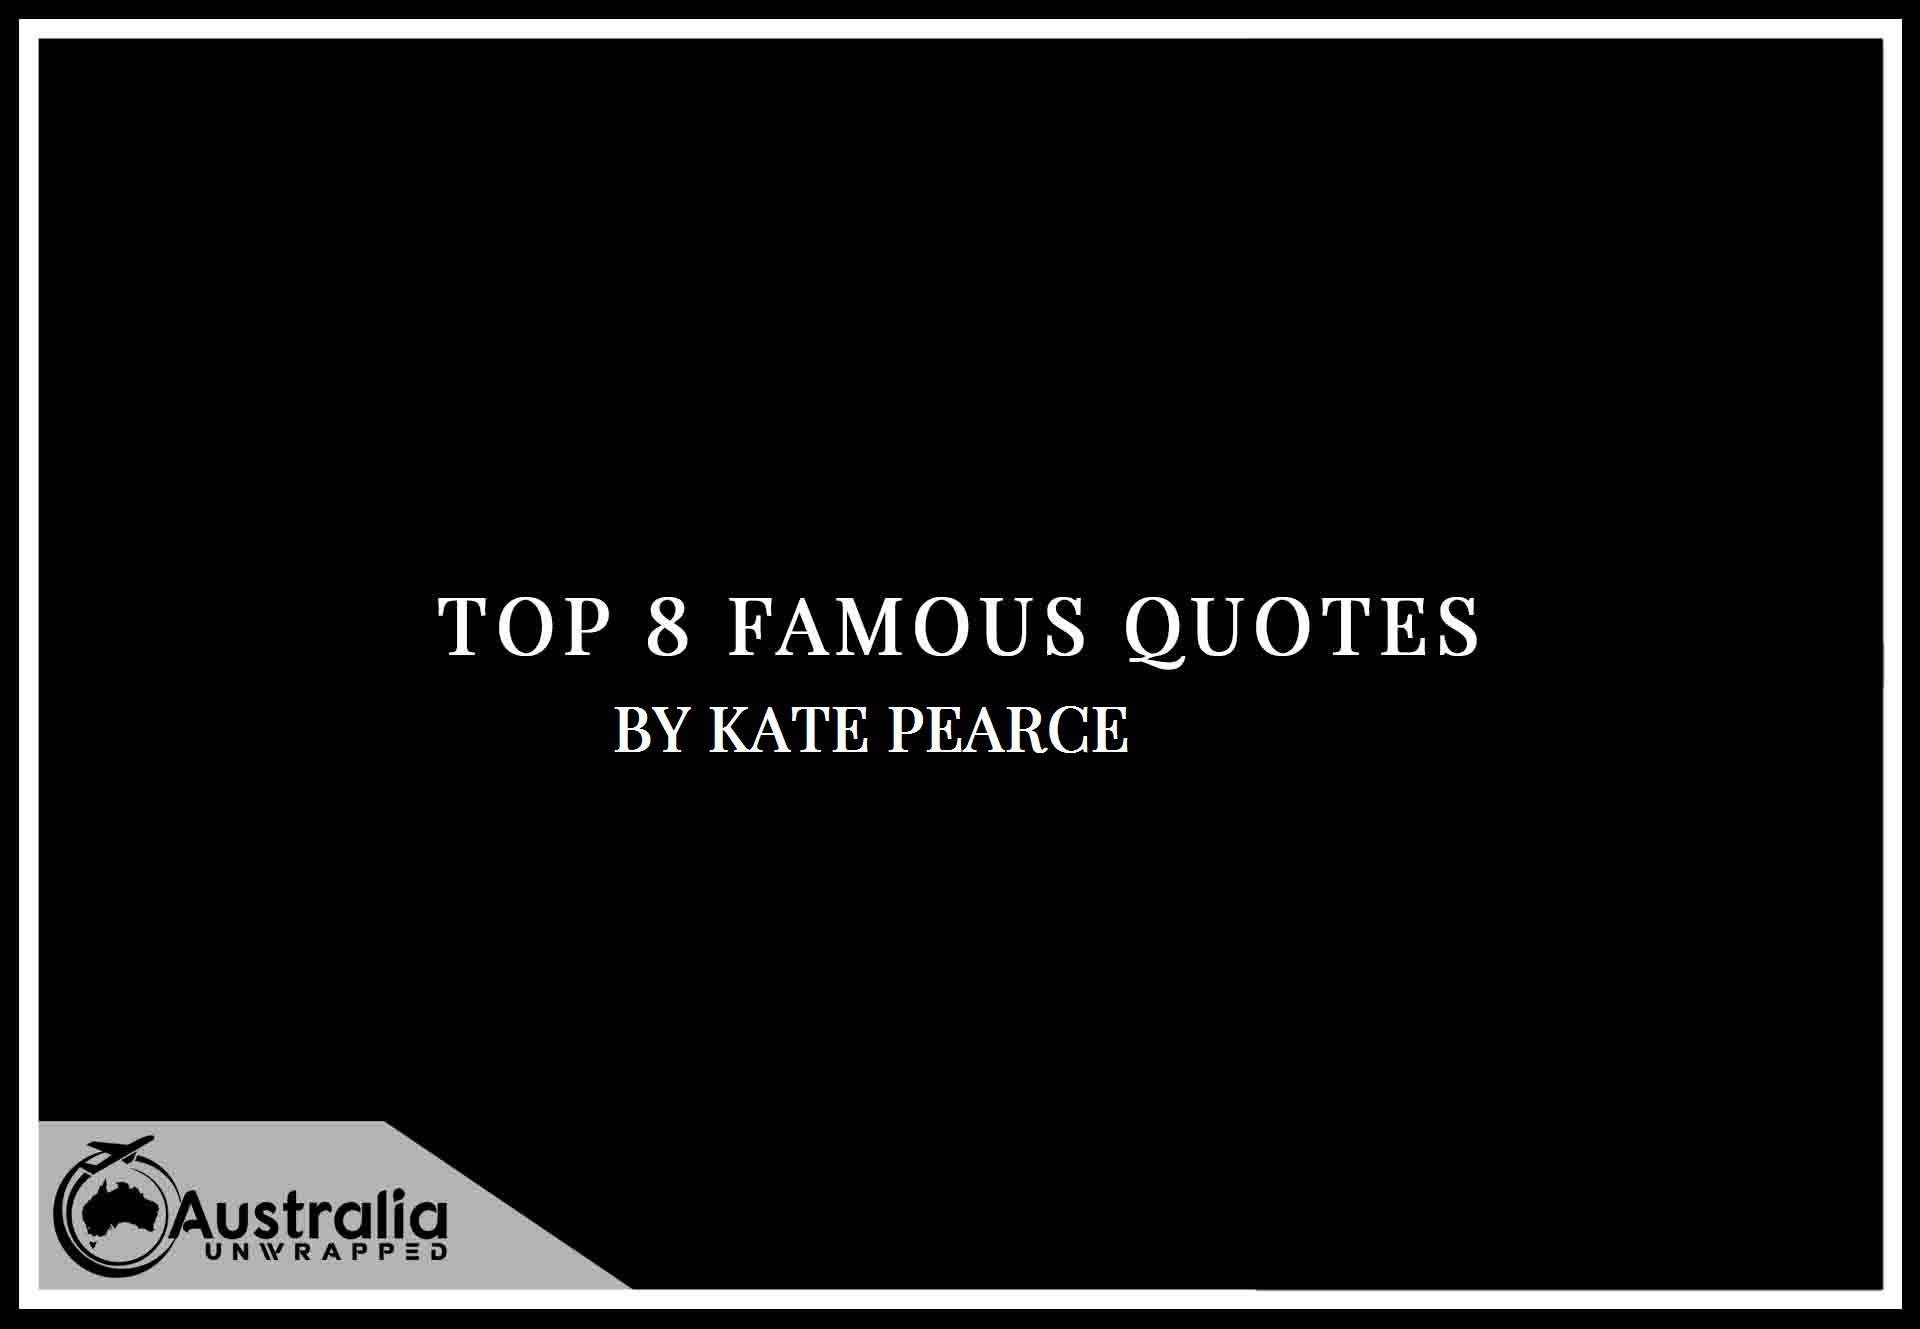 Kate Pearce's Top 8 Popular and Famous Quotes